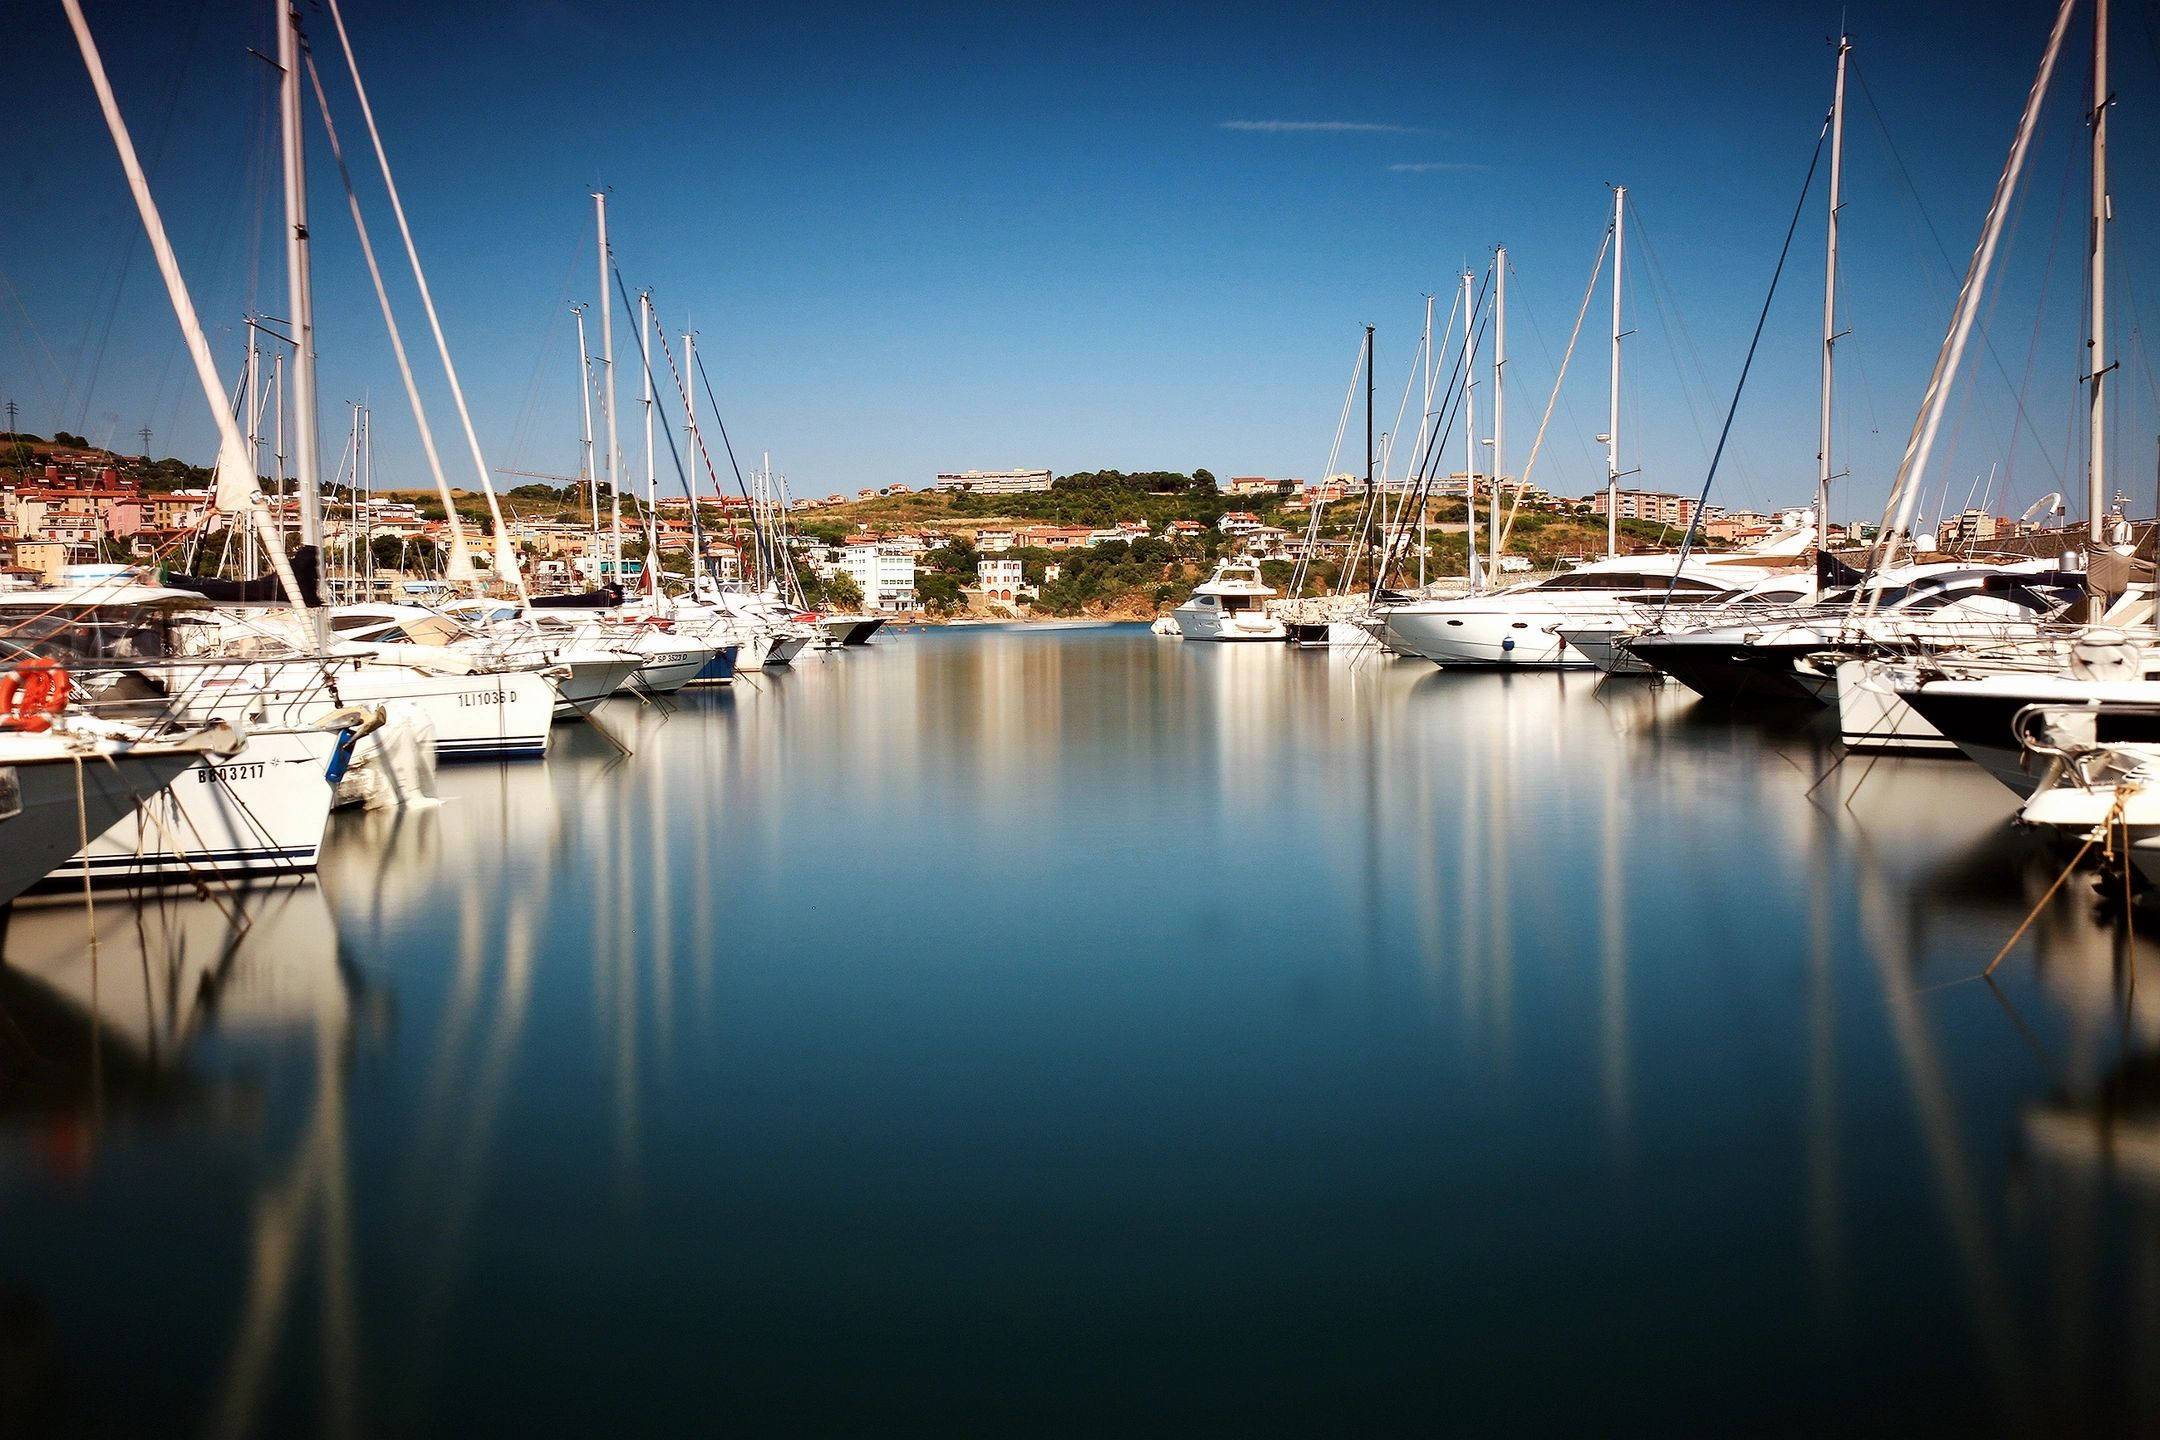 Boats for sale, listing your boat and yacht with a broker